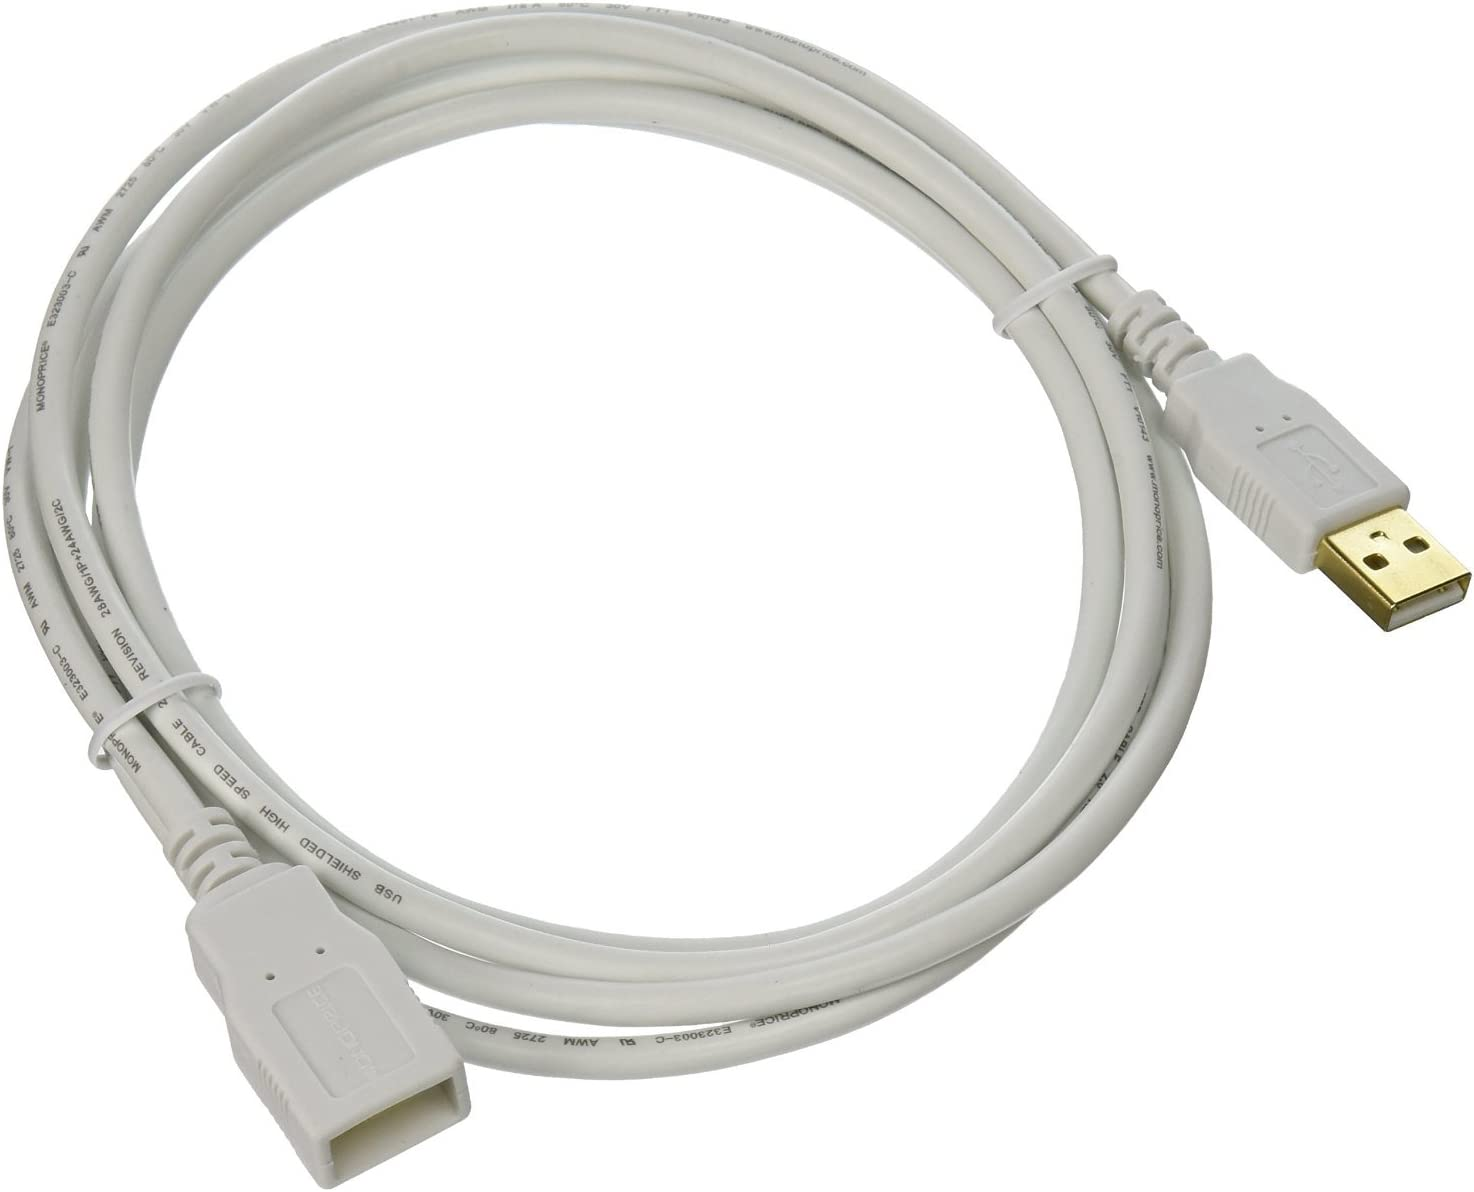 White 6 Feet 4 Pack USB 2.0 A Male to A Female Extension 28//24AWG Cable Gold Plated